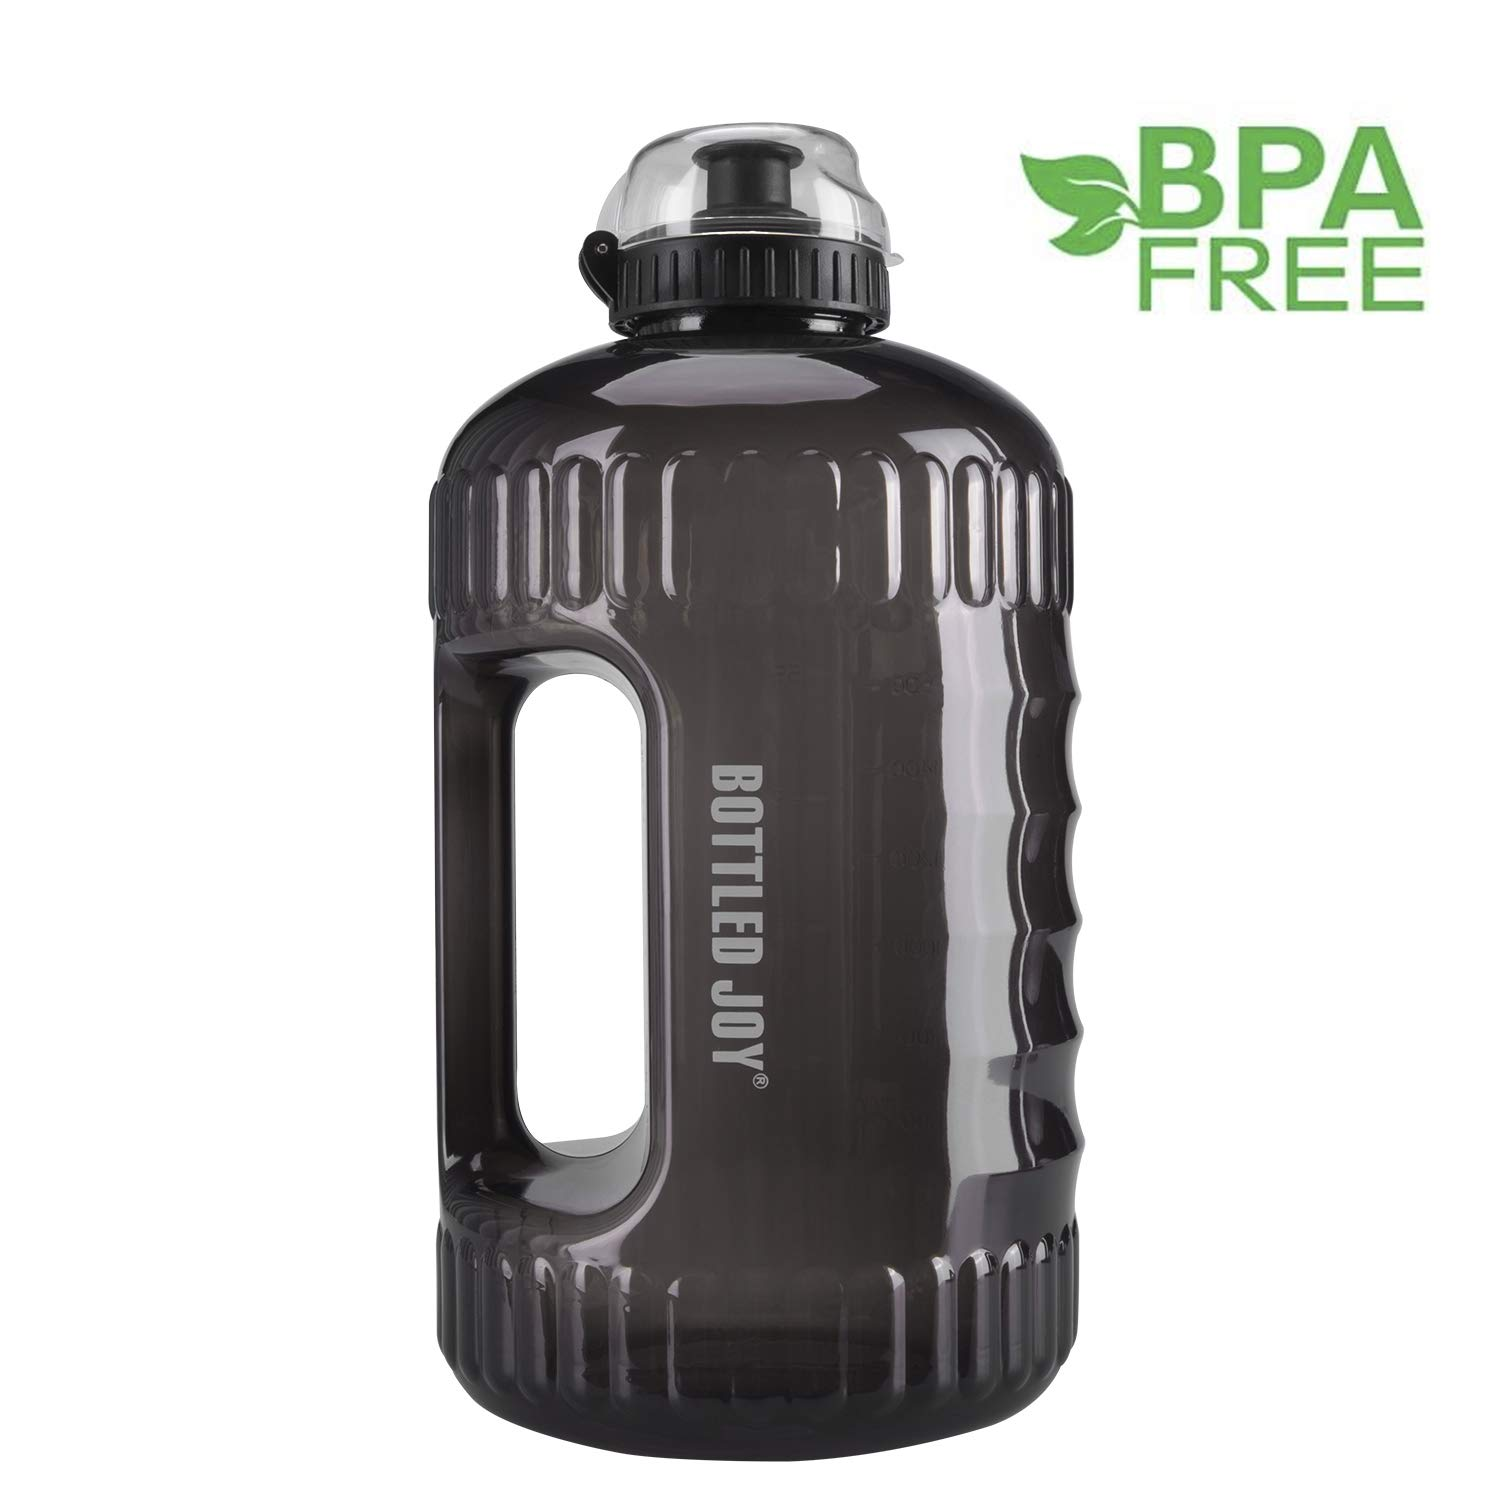 6fa7f9894d BOTTLED JOY Water Bottle, Large Water Jug with Handle BPA Free Plastic  Sports Water Bottle Wide Mouth and Leakproof Gallon Water Bottle for  Outdoor Gym ...